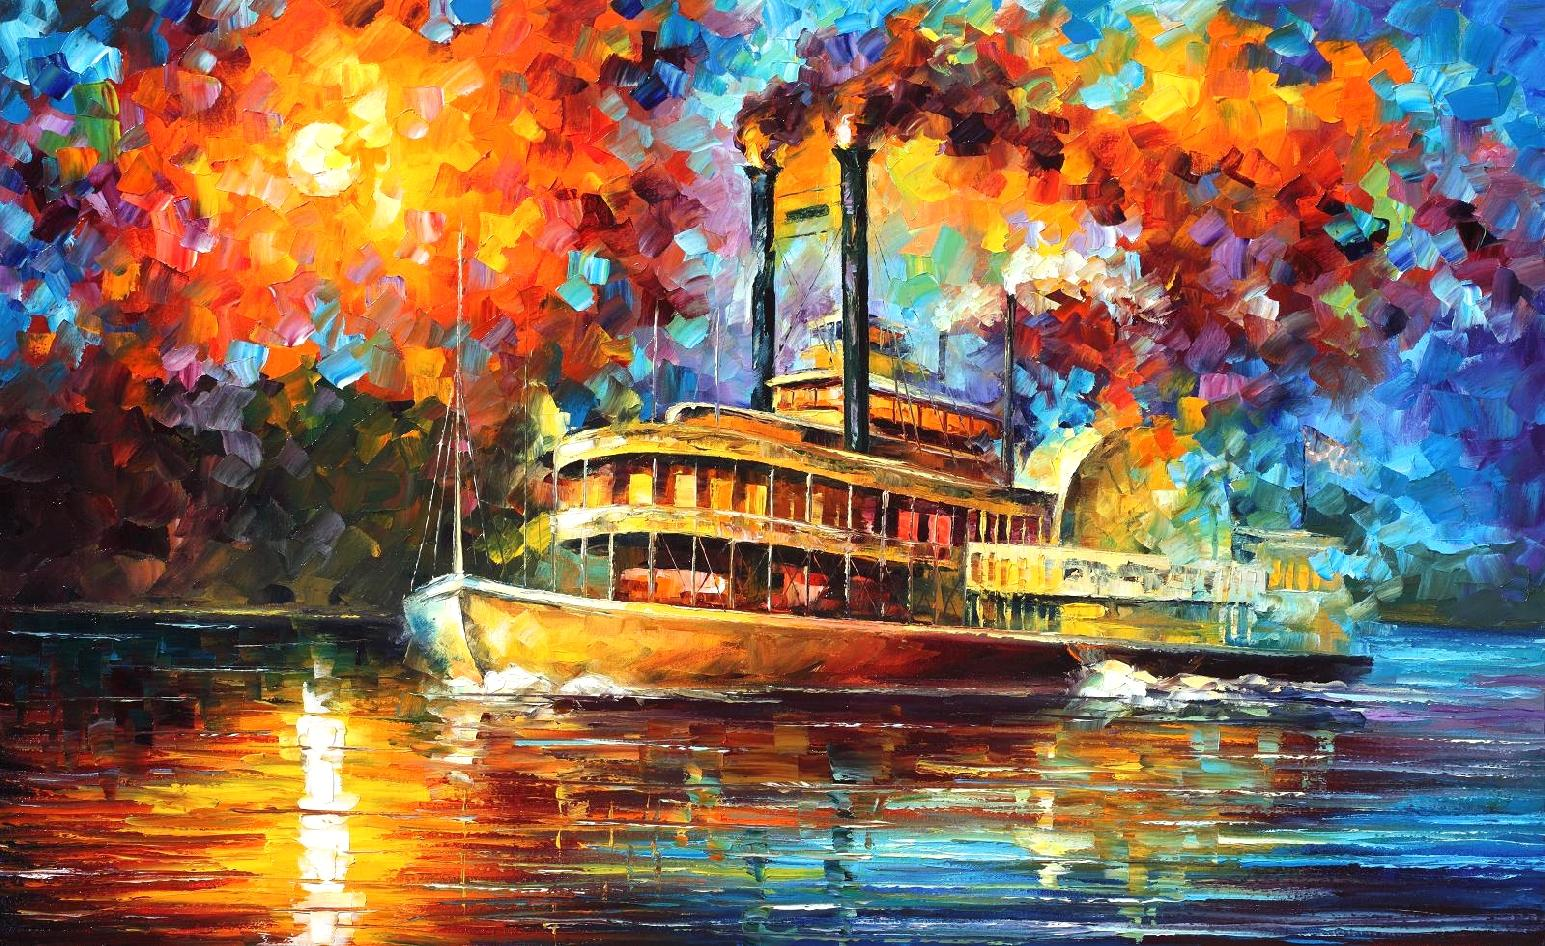 "STEAMBOAT — PALETTE KNIFE Oil Painting On Canvas By Leonid Afremov - Size 40""x30"" offer"